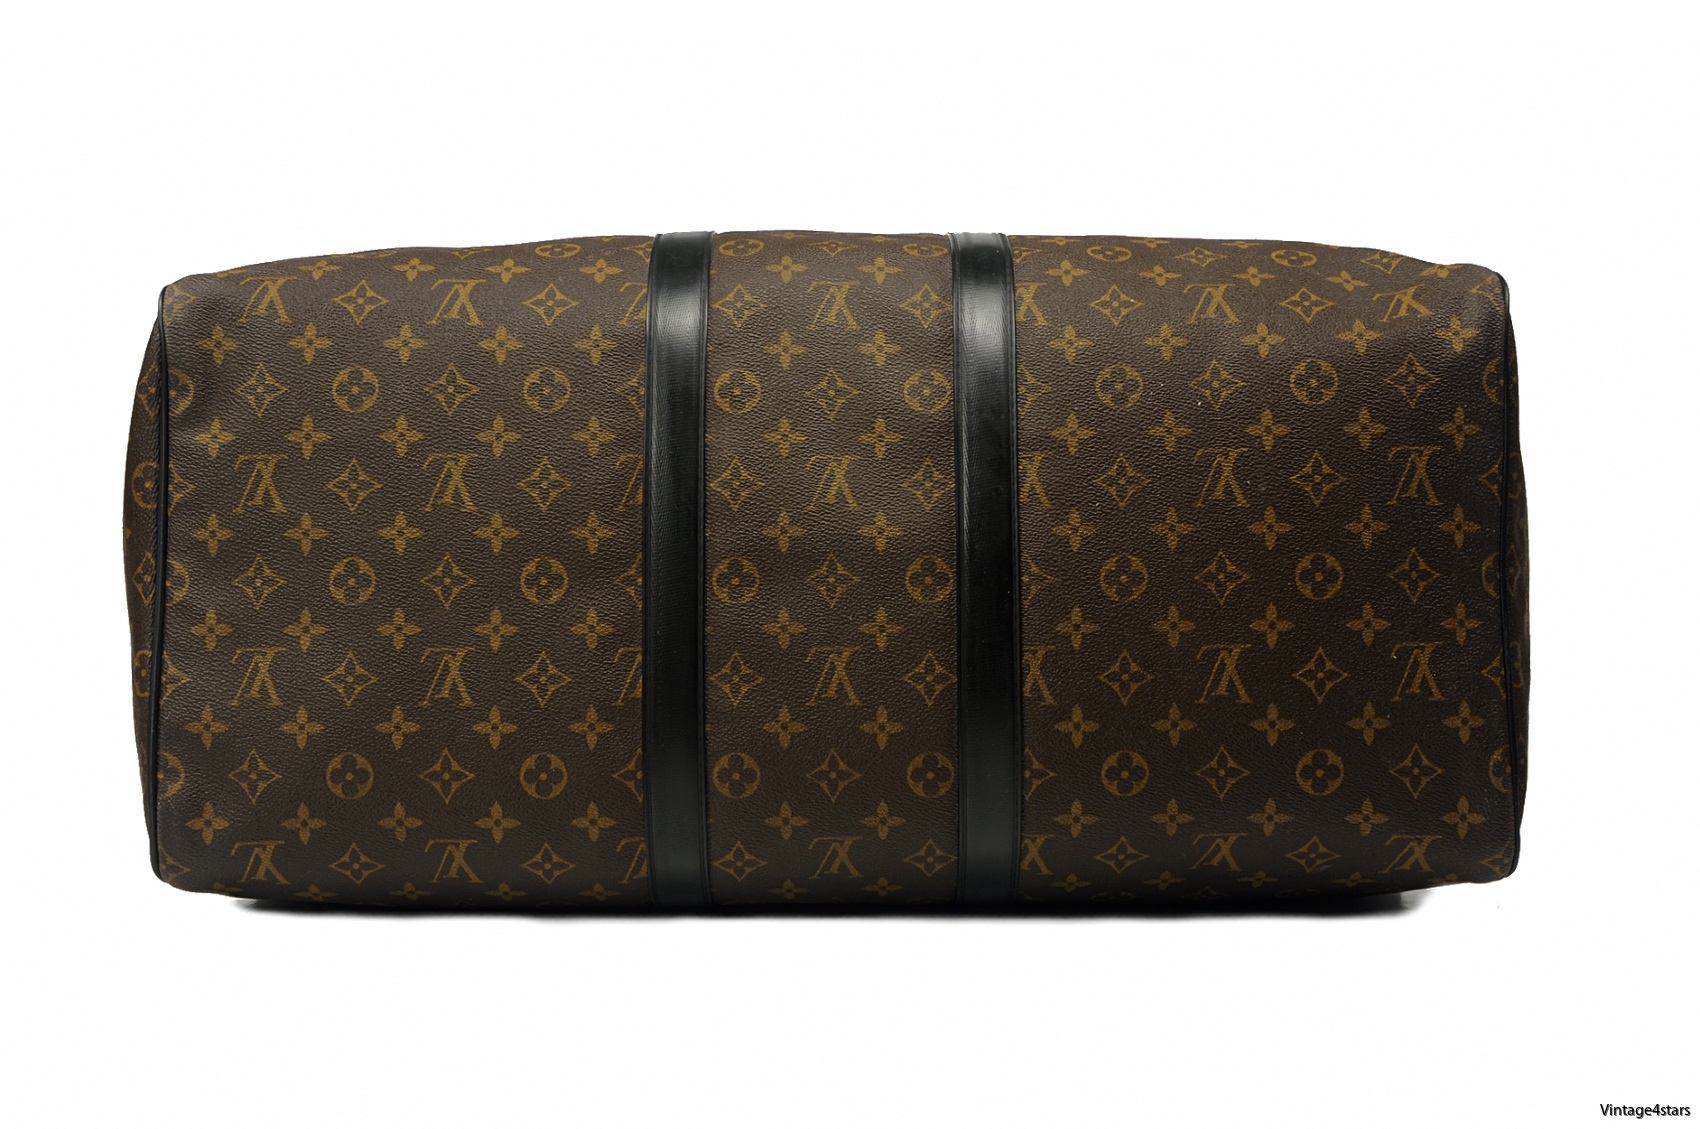 LOUIS VUITTON KEEPALL WATERPROOF 3